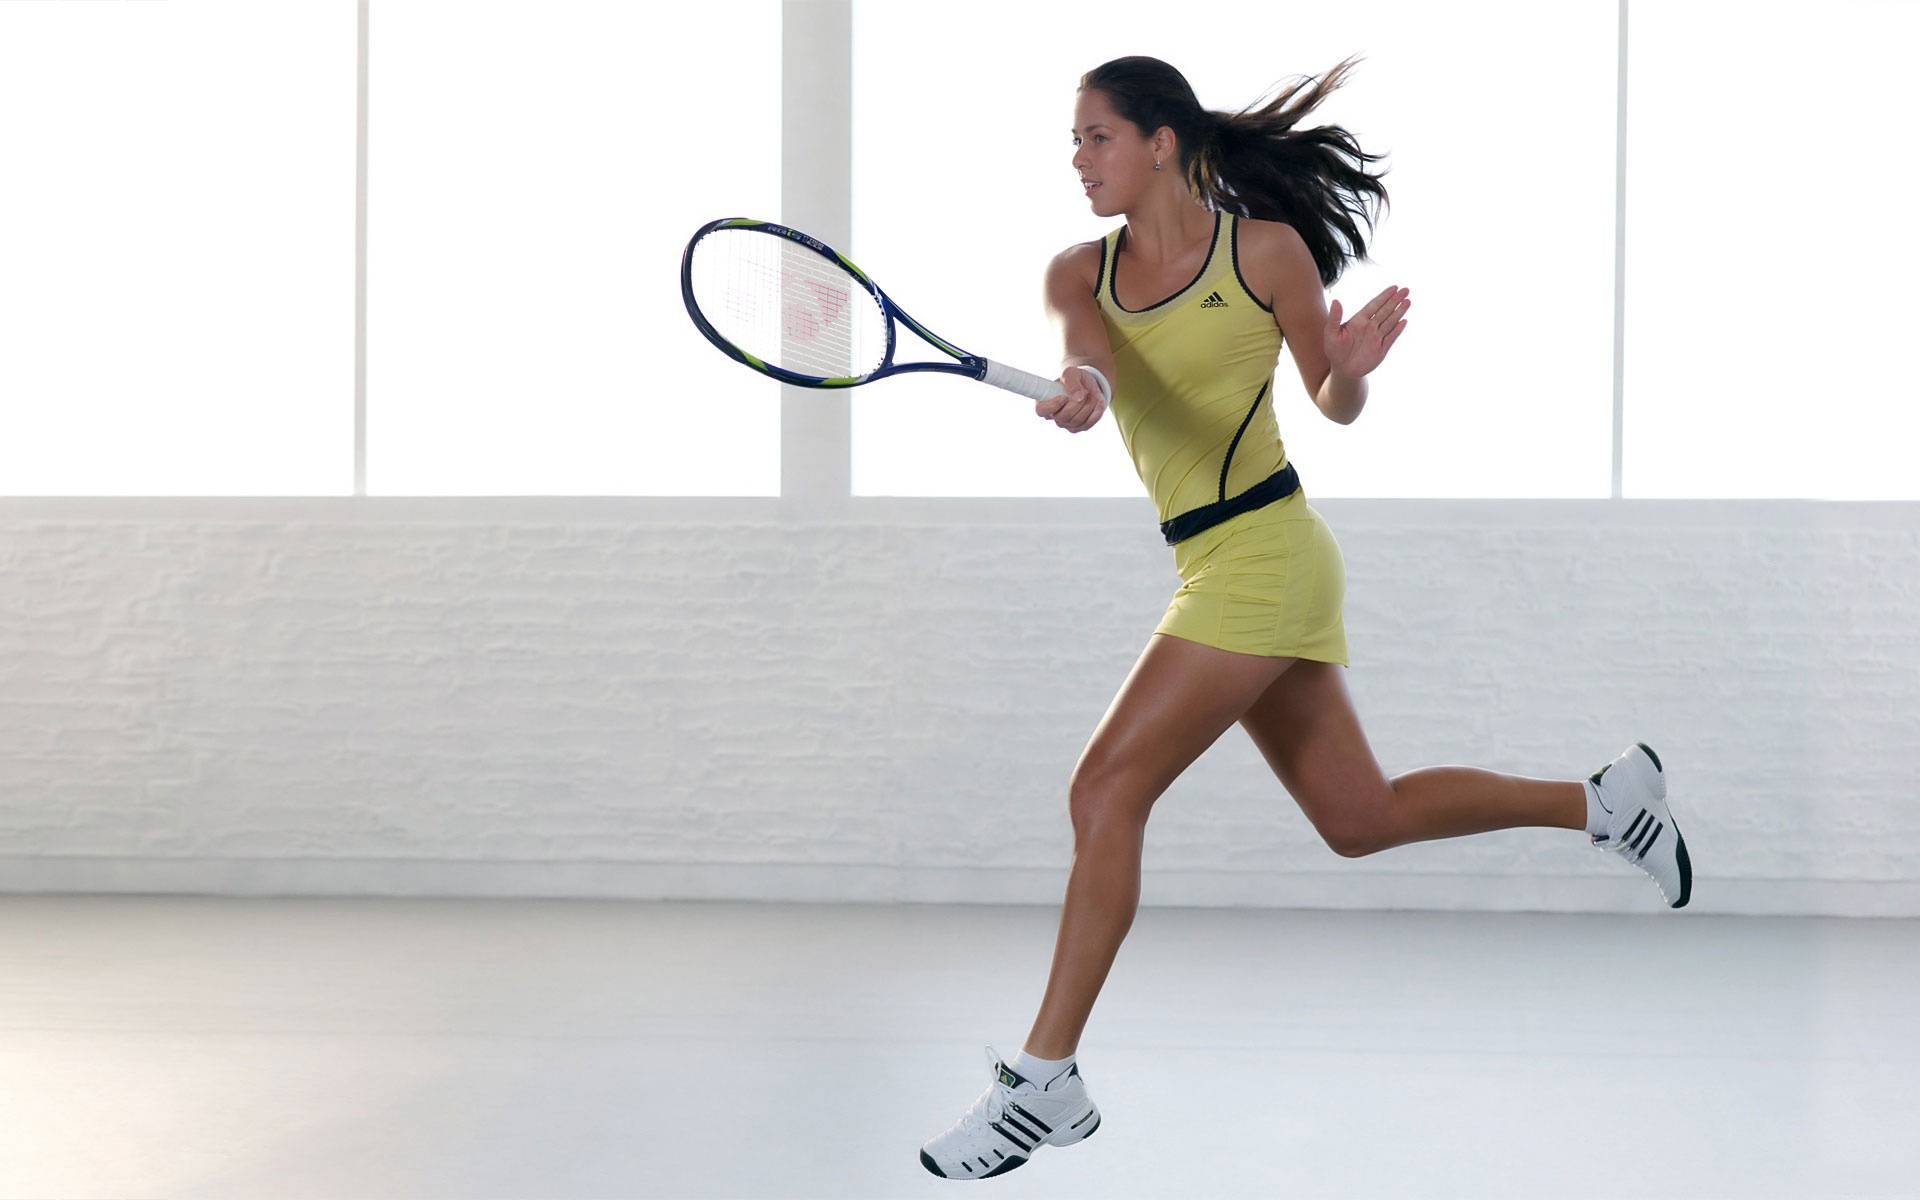 ana_ivanovic images hd A9